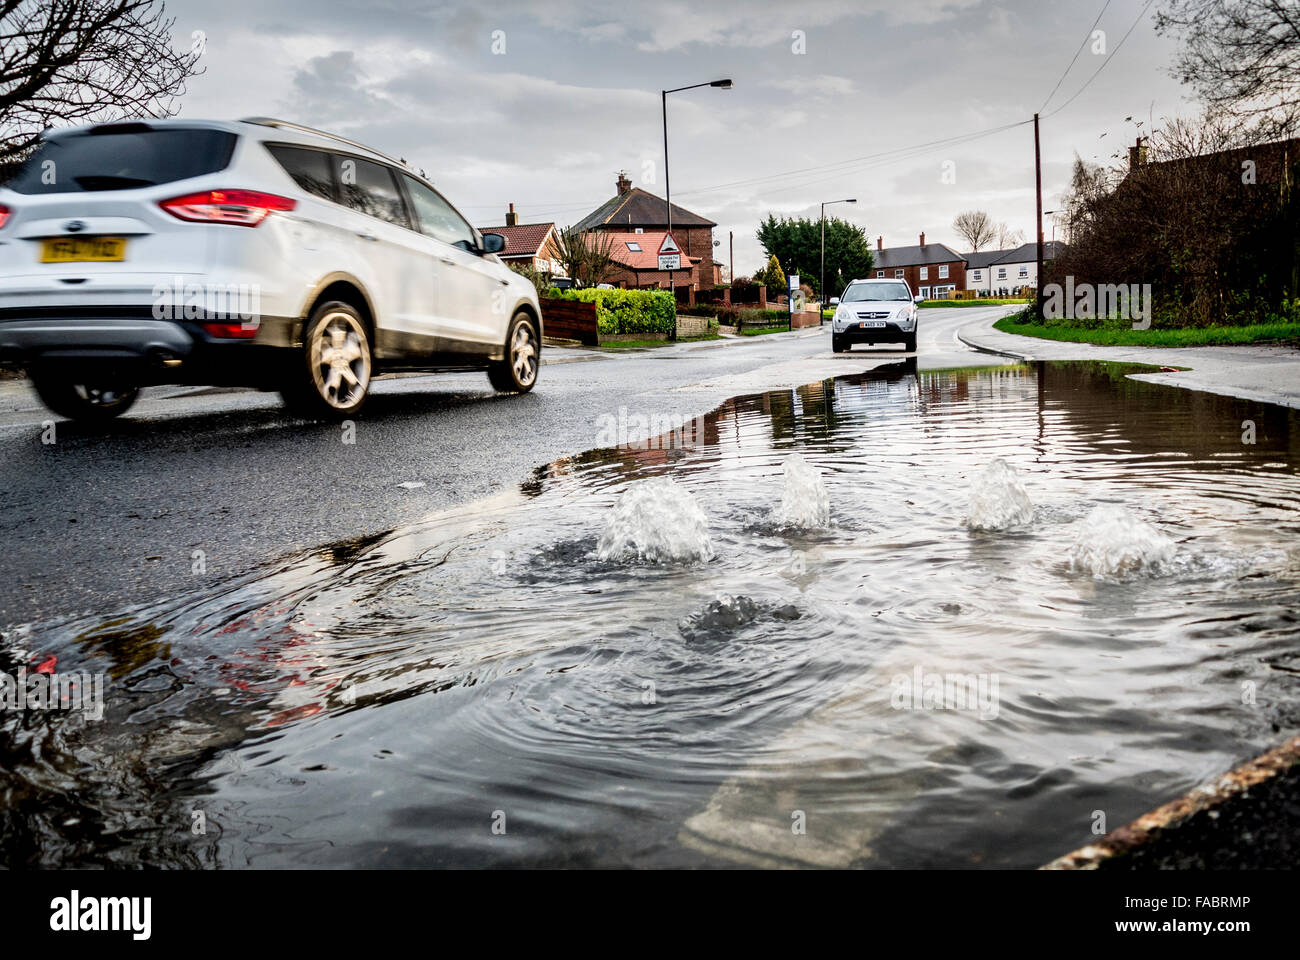 York, UK. 26th December, 2015. UK weather. Heavy rain in the North of England causes flooding in York on Boxing - Stock Image